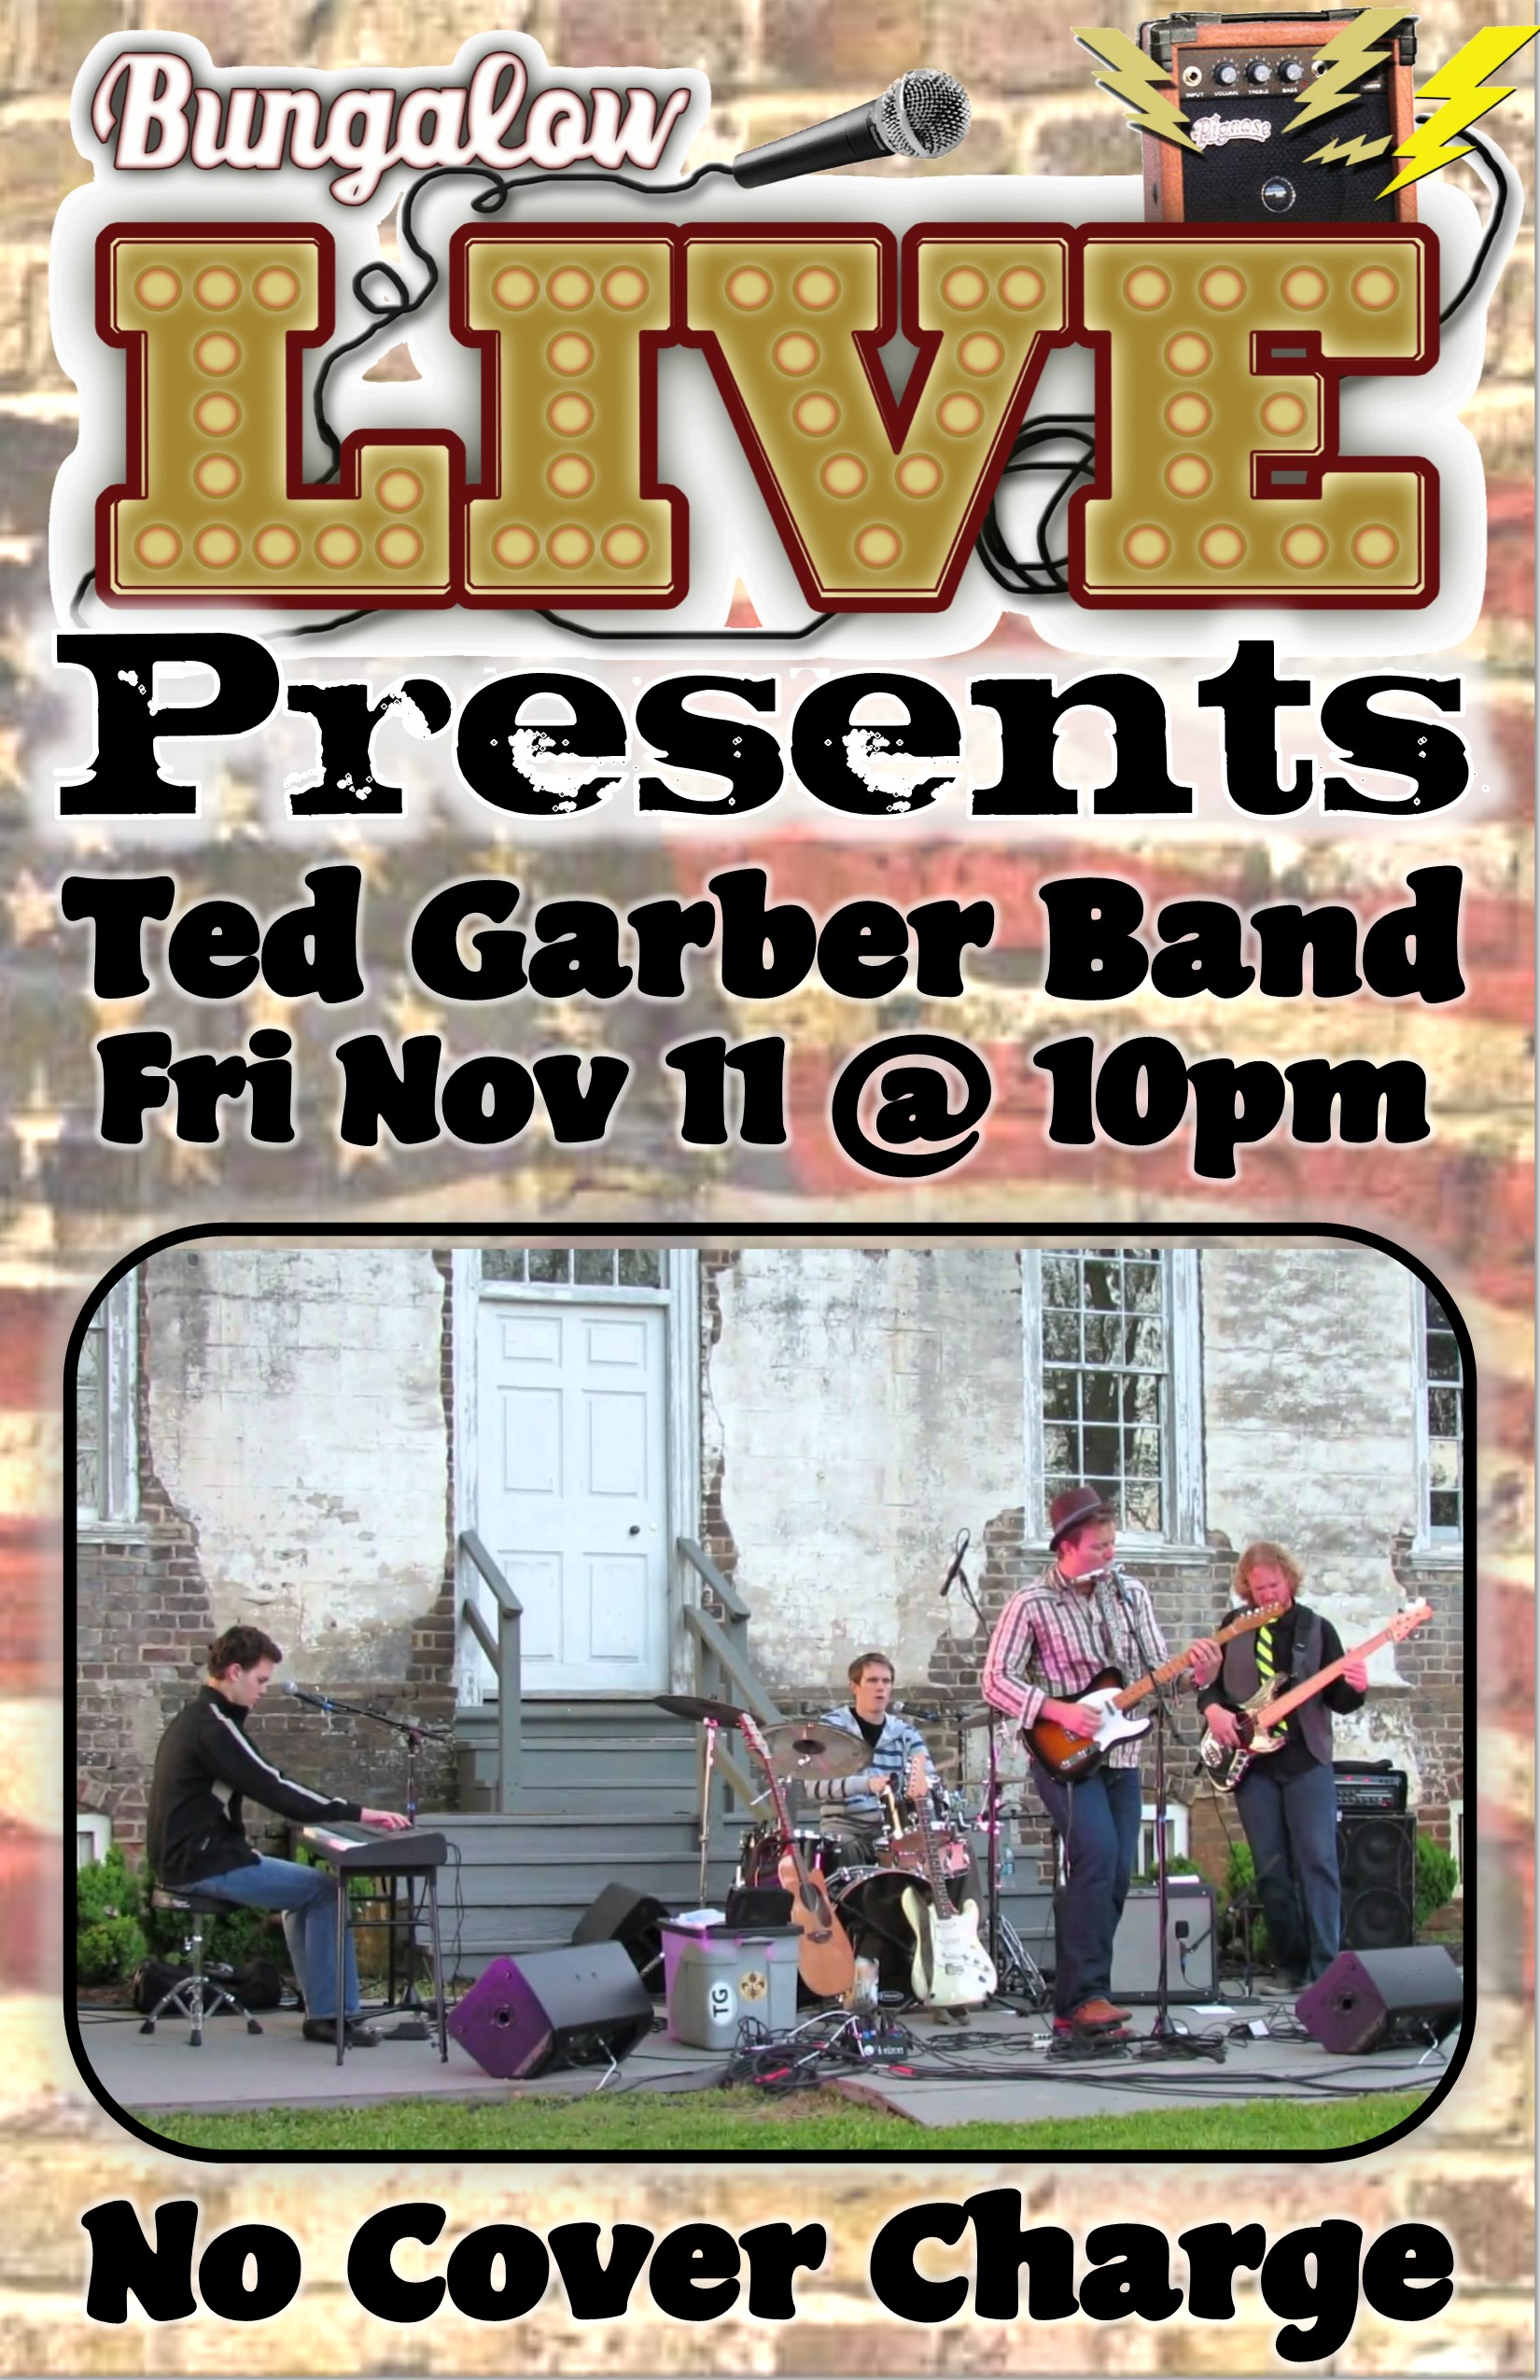 Ted garber band 11X17